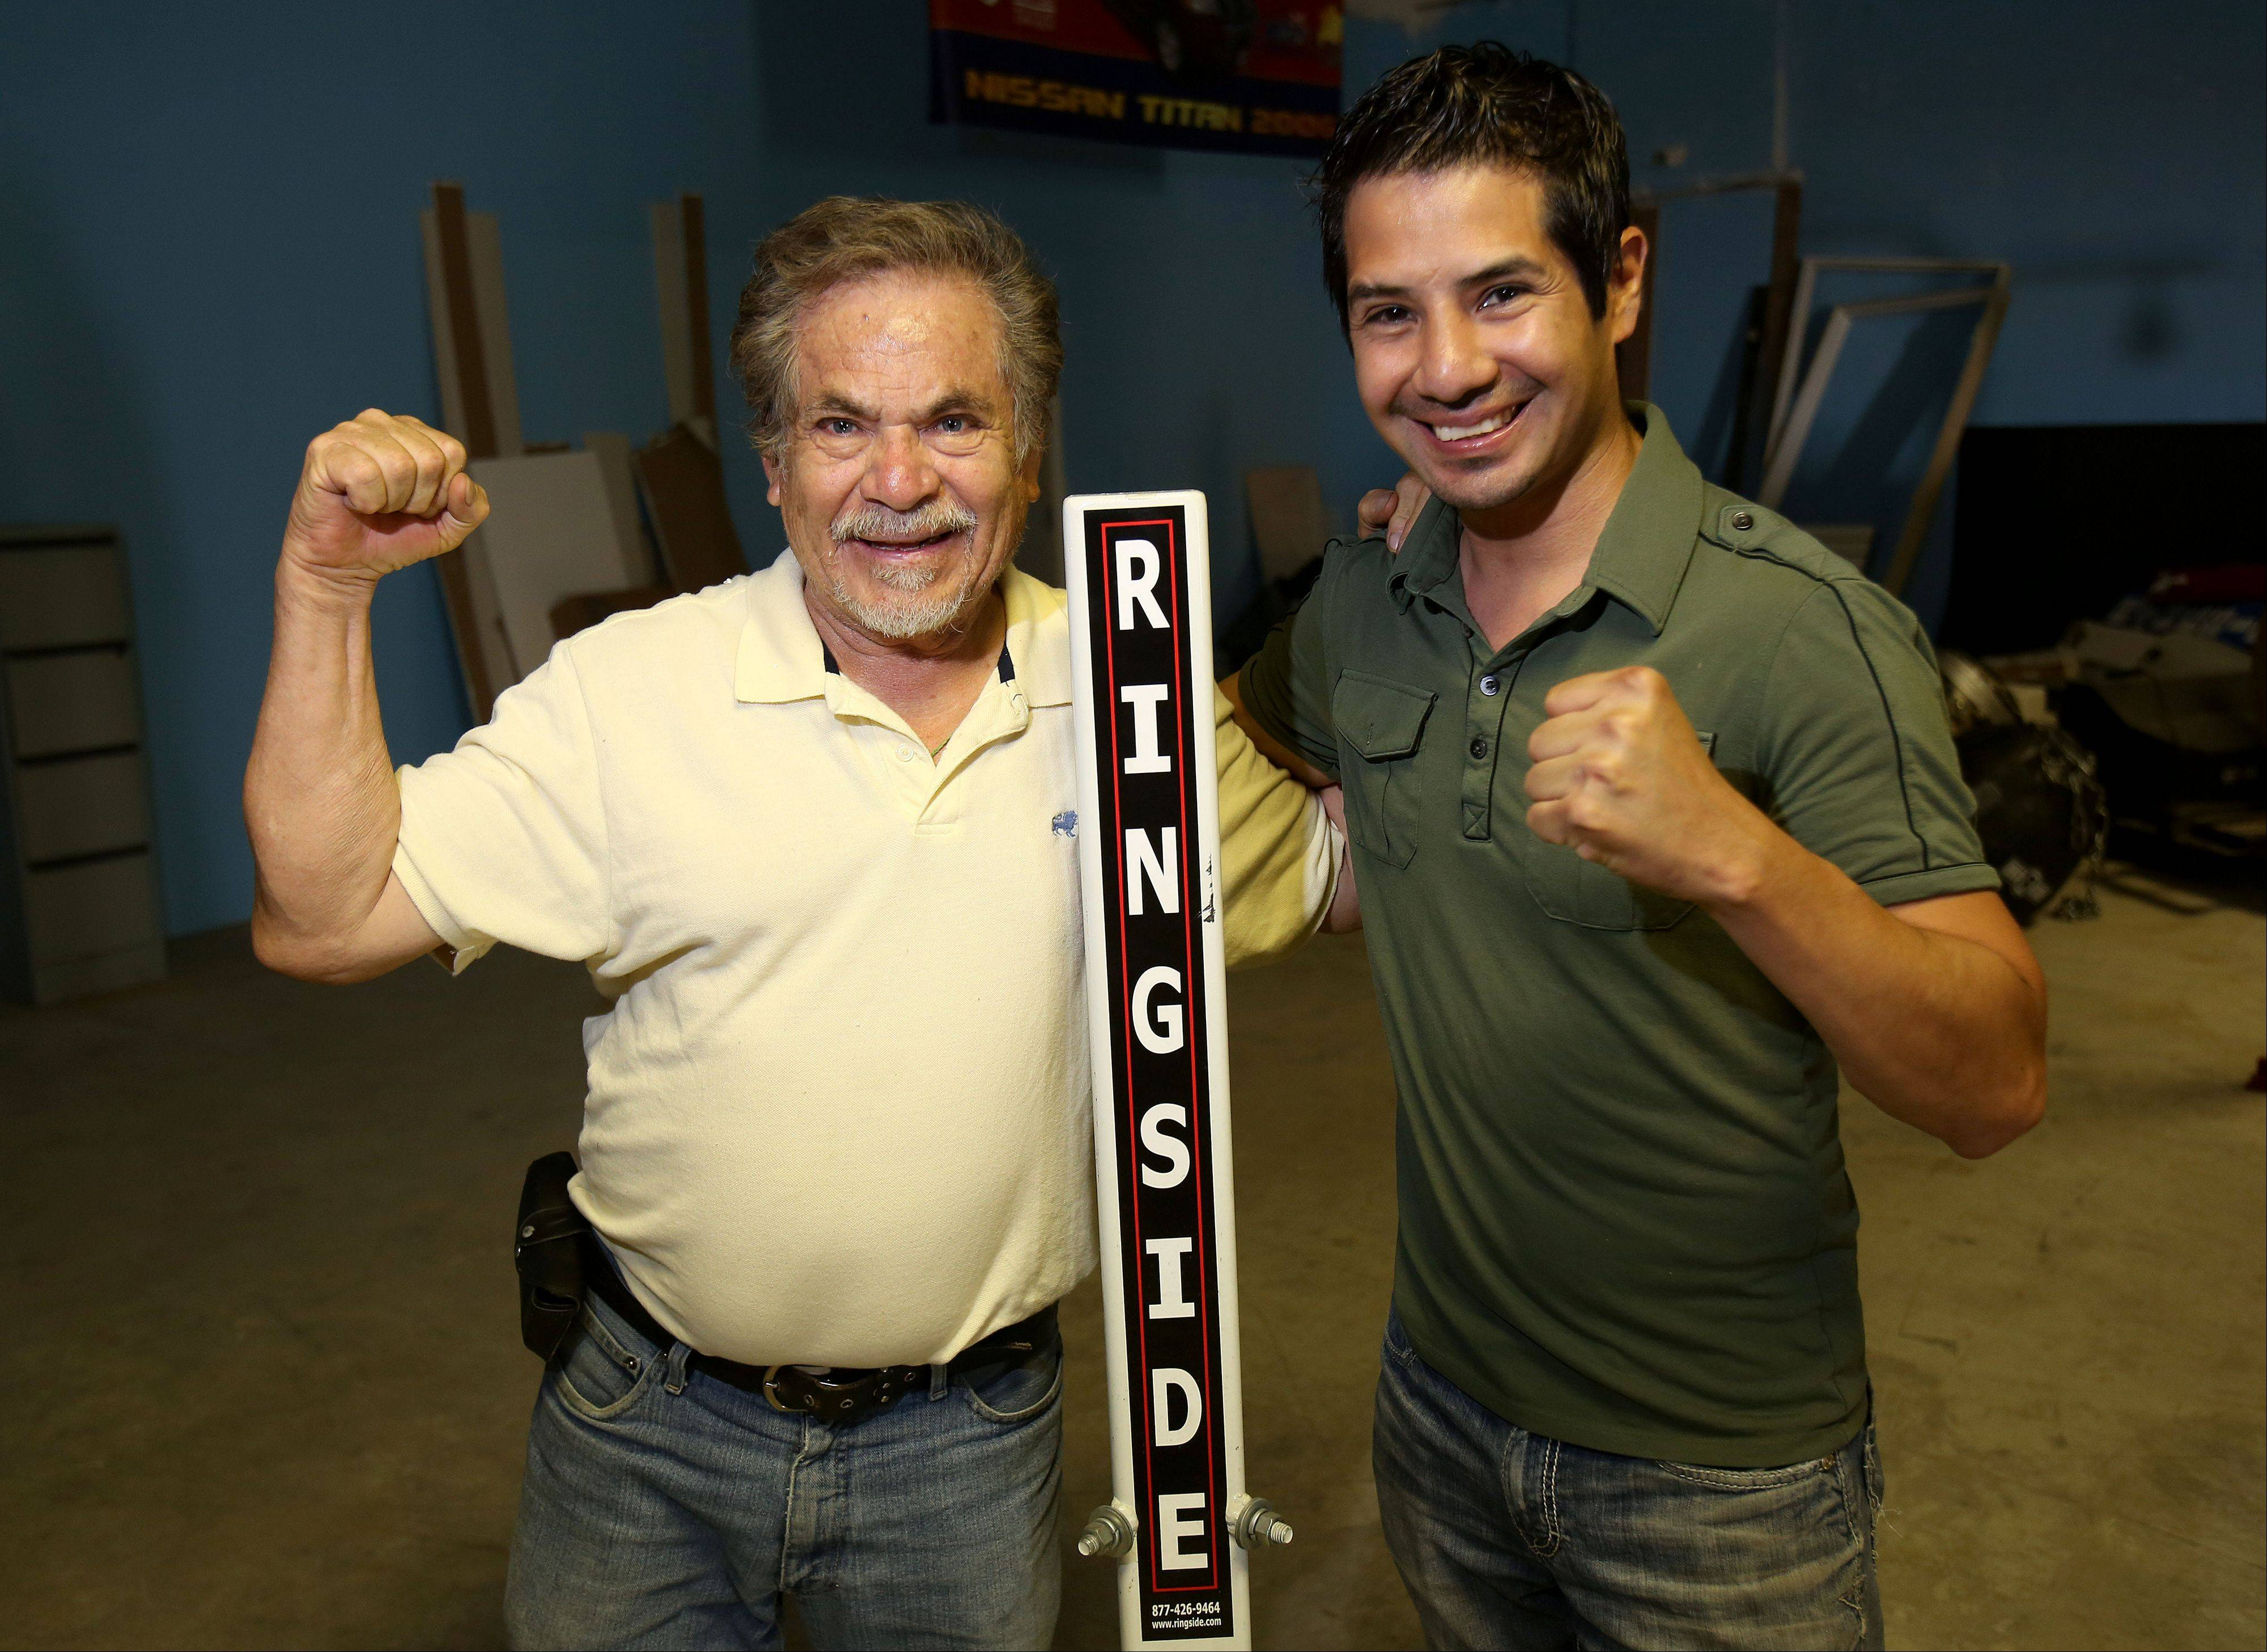 Former featherweight professional boxer Jose Hernandez, right, and his father Jose Hernandez Sr., both of Round Lake, plan to open a training academy in Round Lake after getting the go-ahead from the village board.